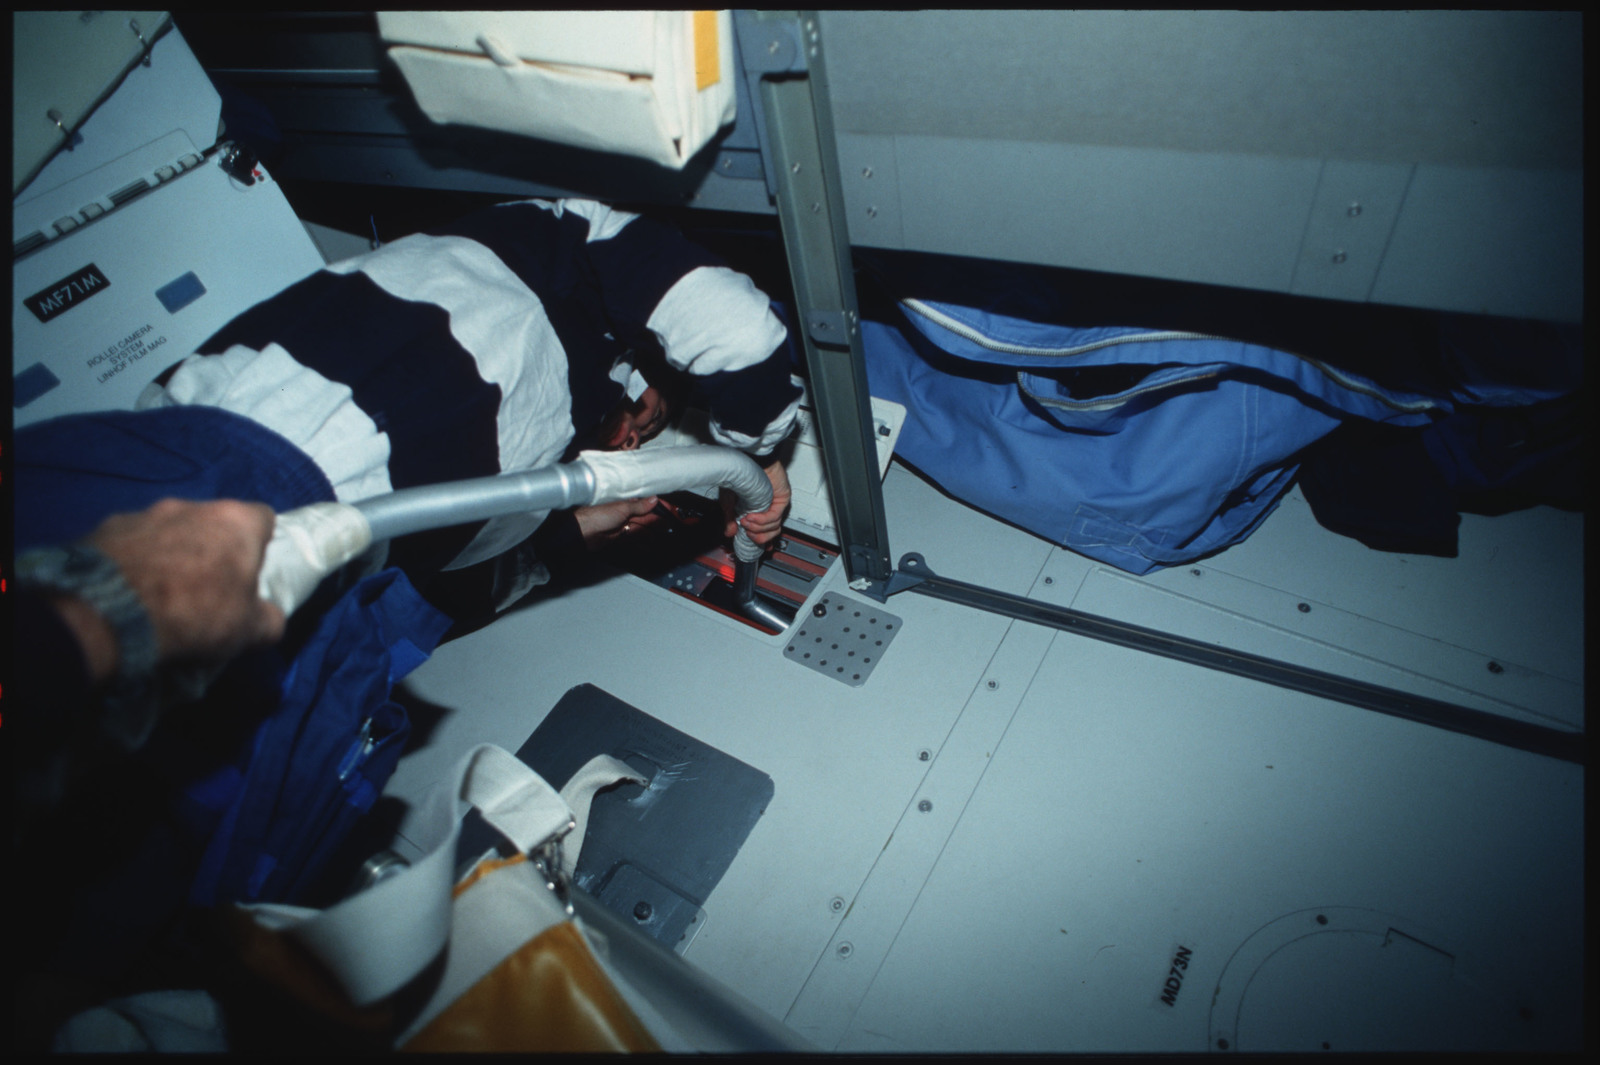 S45-14-018 - STS-045 - STS-45 crewmembers engaged in orbiter maintenance